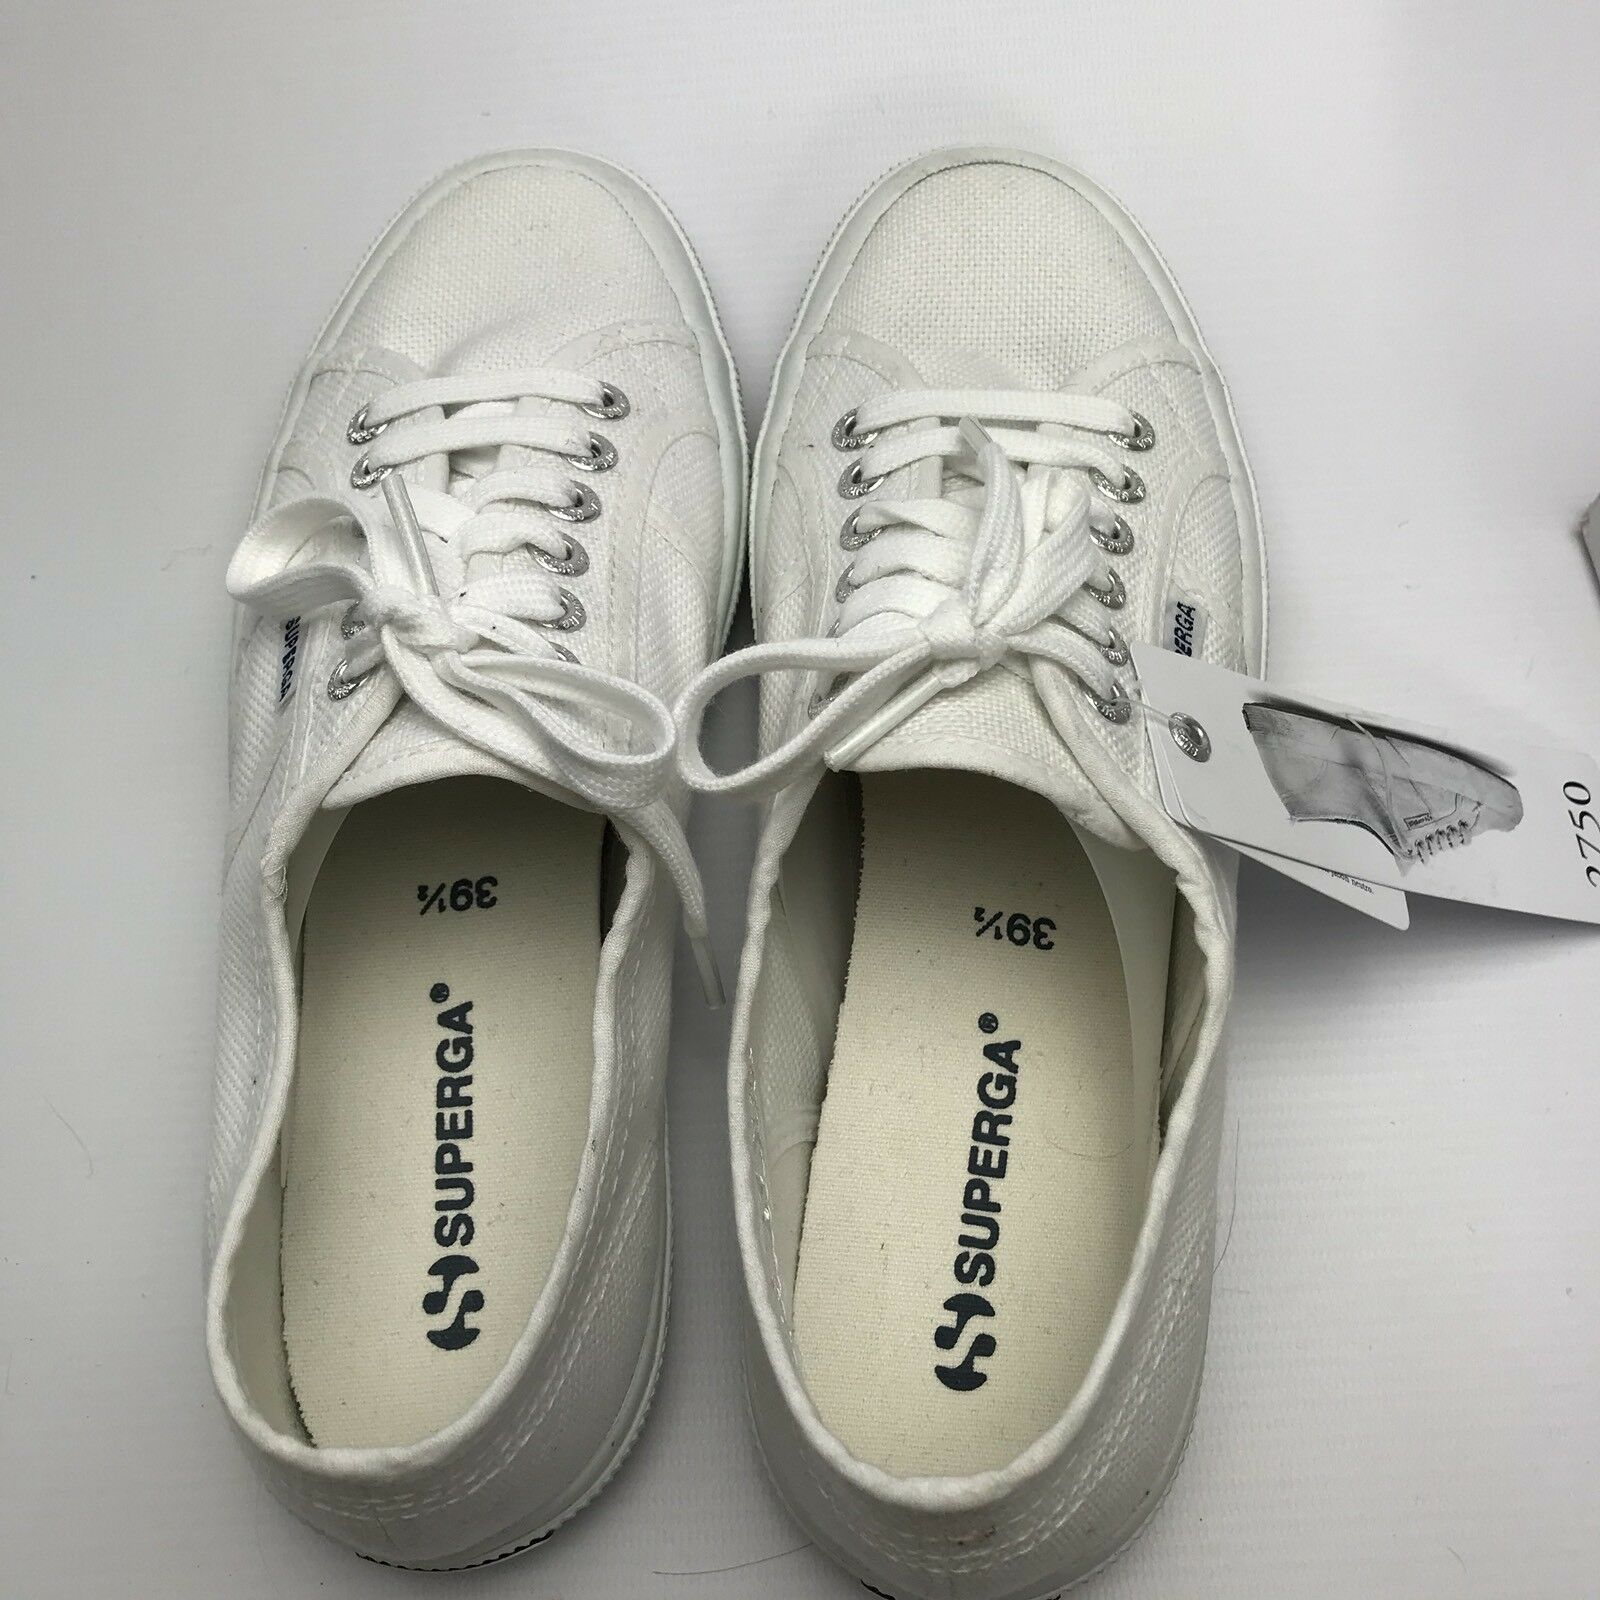 Superga 2750 Cotu Classic Womens White Canvas 39.5 Trainers UK 6 EUR 39.5 Canvas US 8.5 d39018